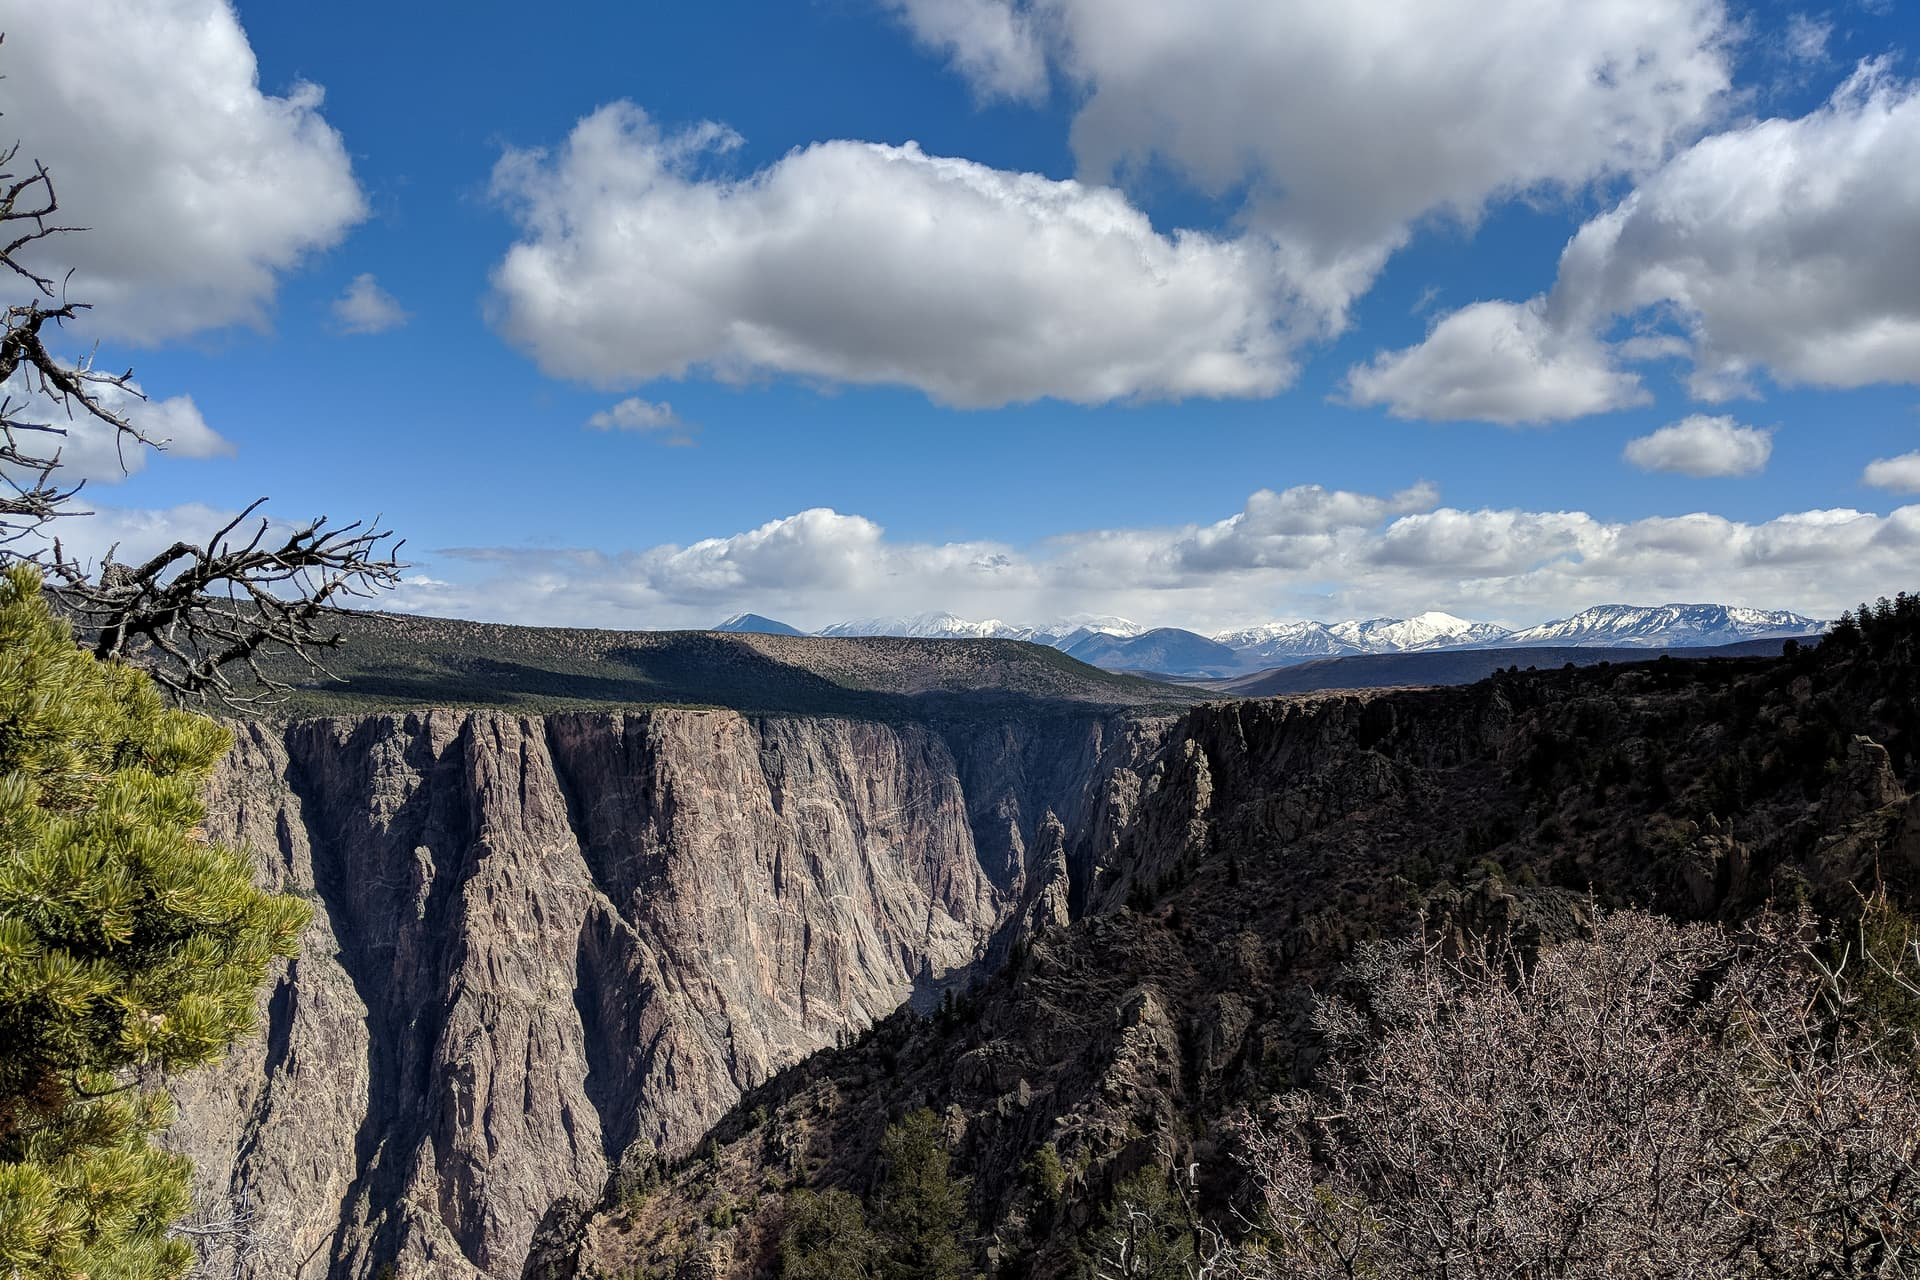 Looking northeast into the steep walls of the Black Canyon of he Gunnison. In the distance, a range of domed, snow-covered peaks.